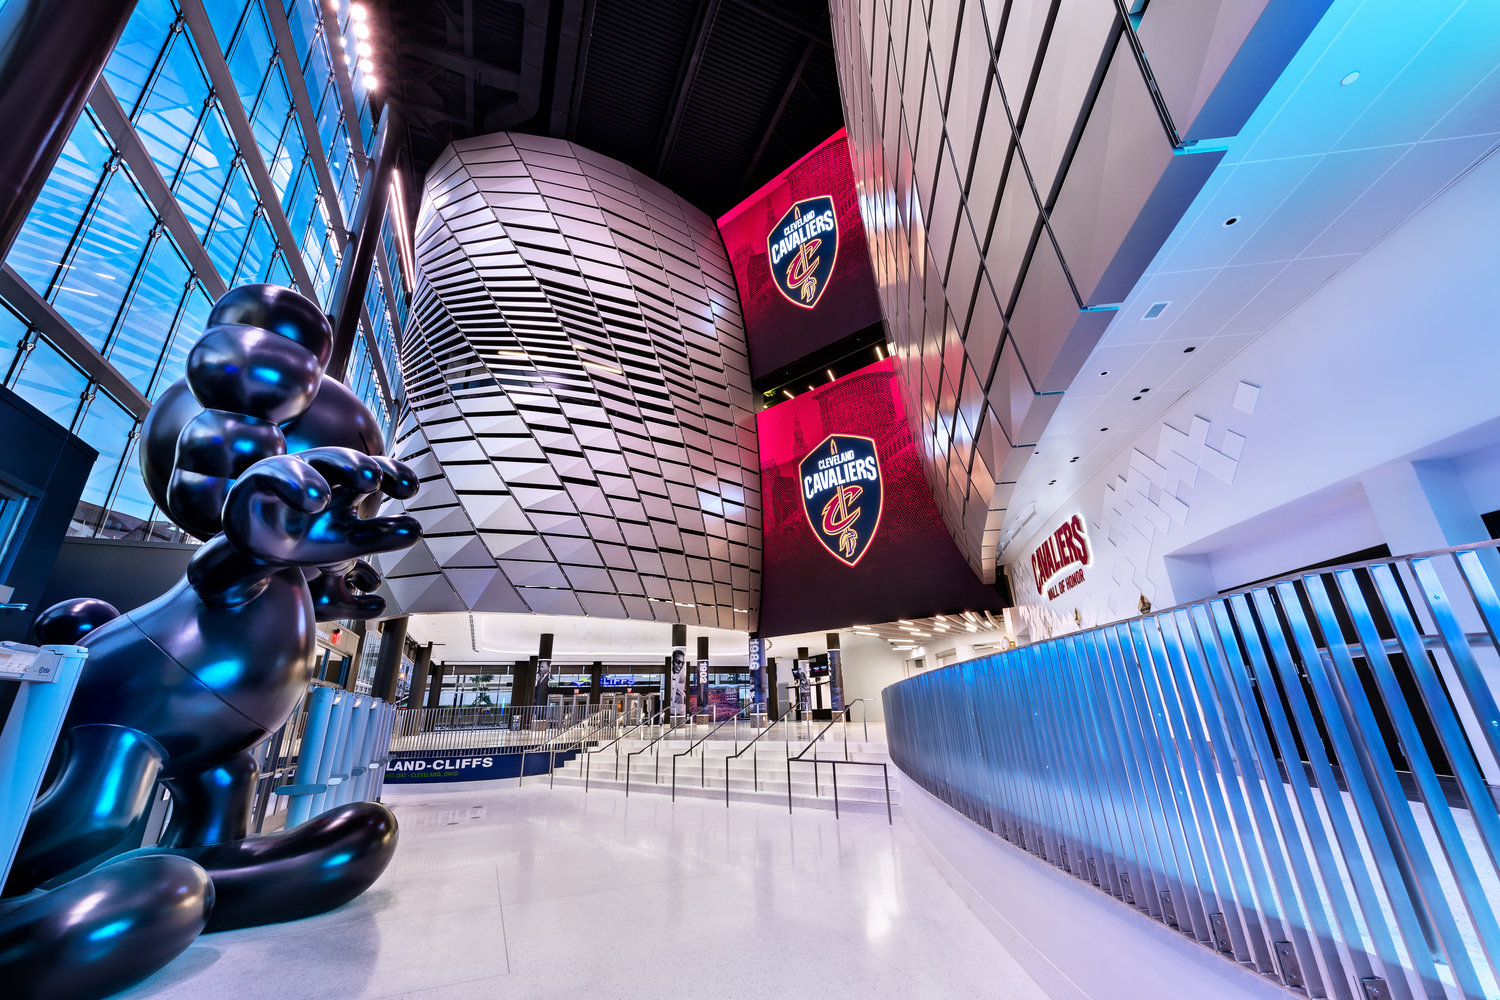 ANC's experience design & technology solutions boost Rocket Mortgage FieldHouse transformation